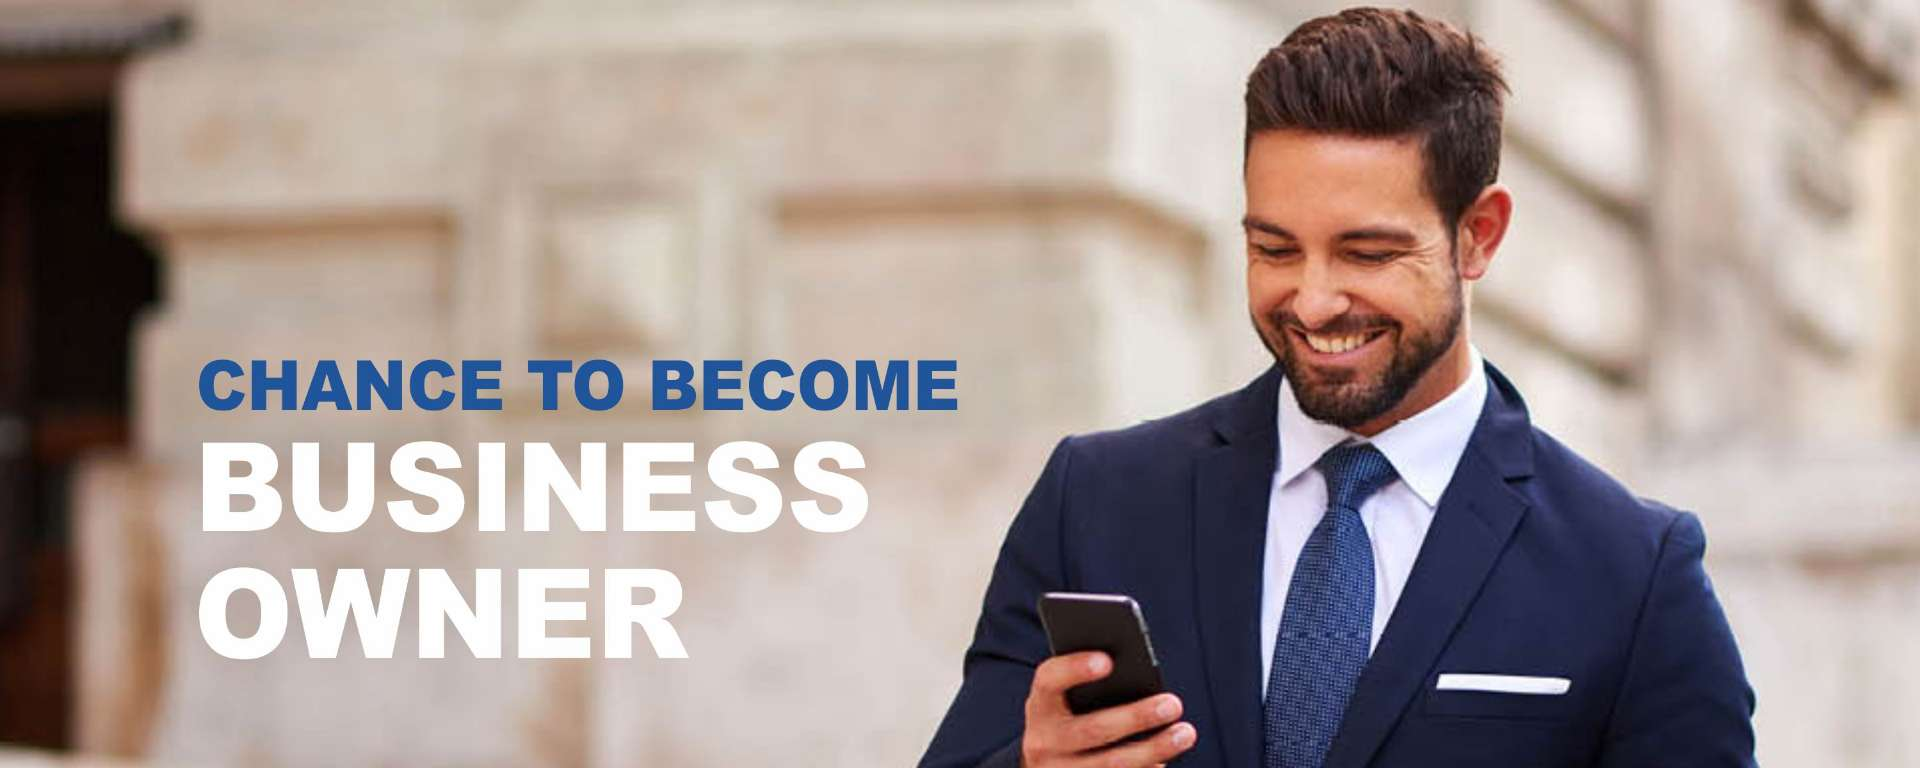 MLM Business Makes You Business Owner